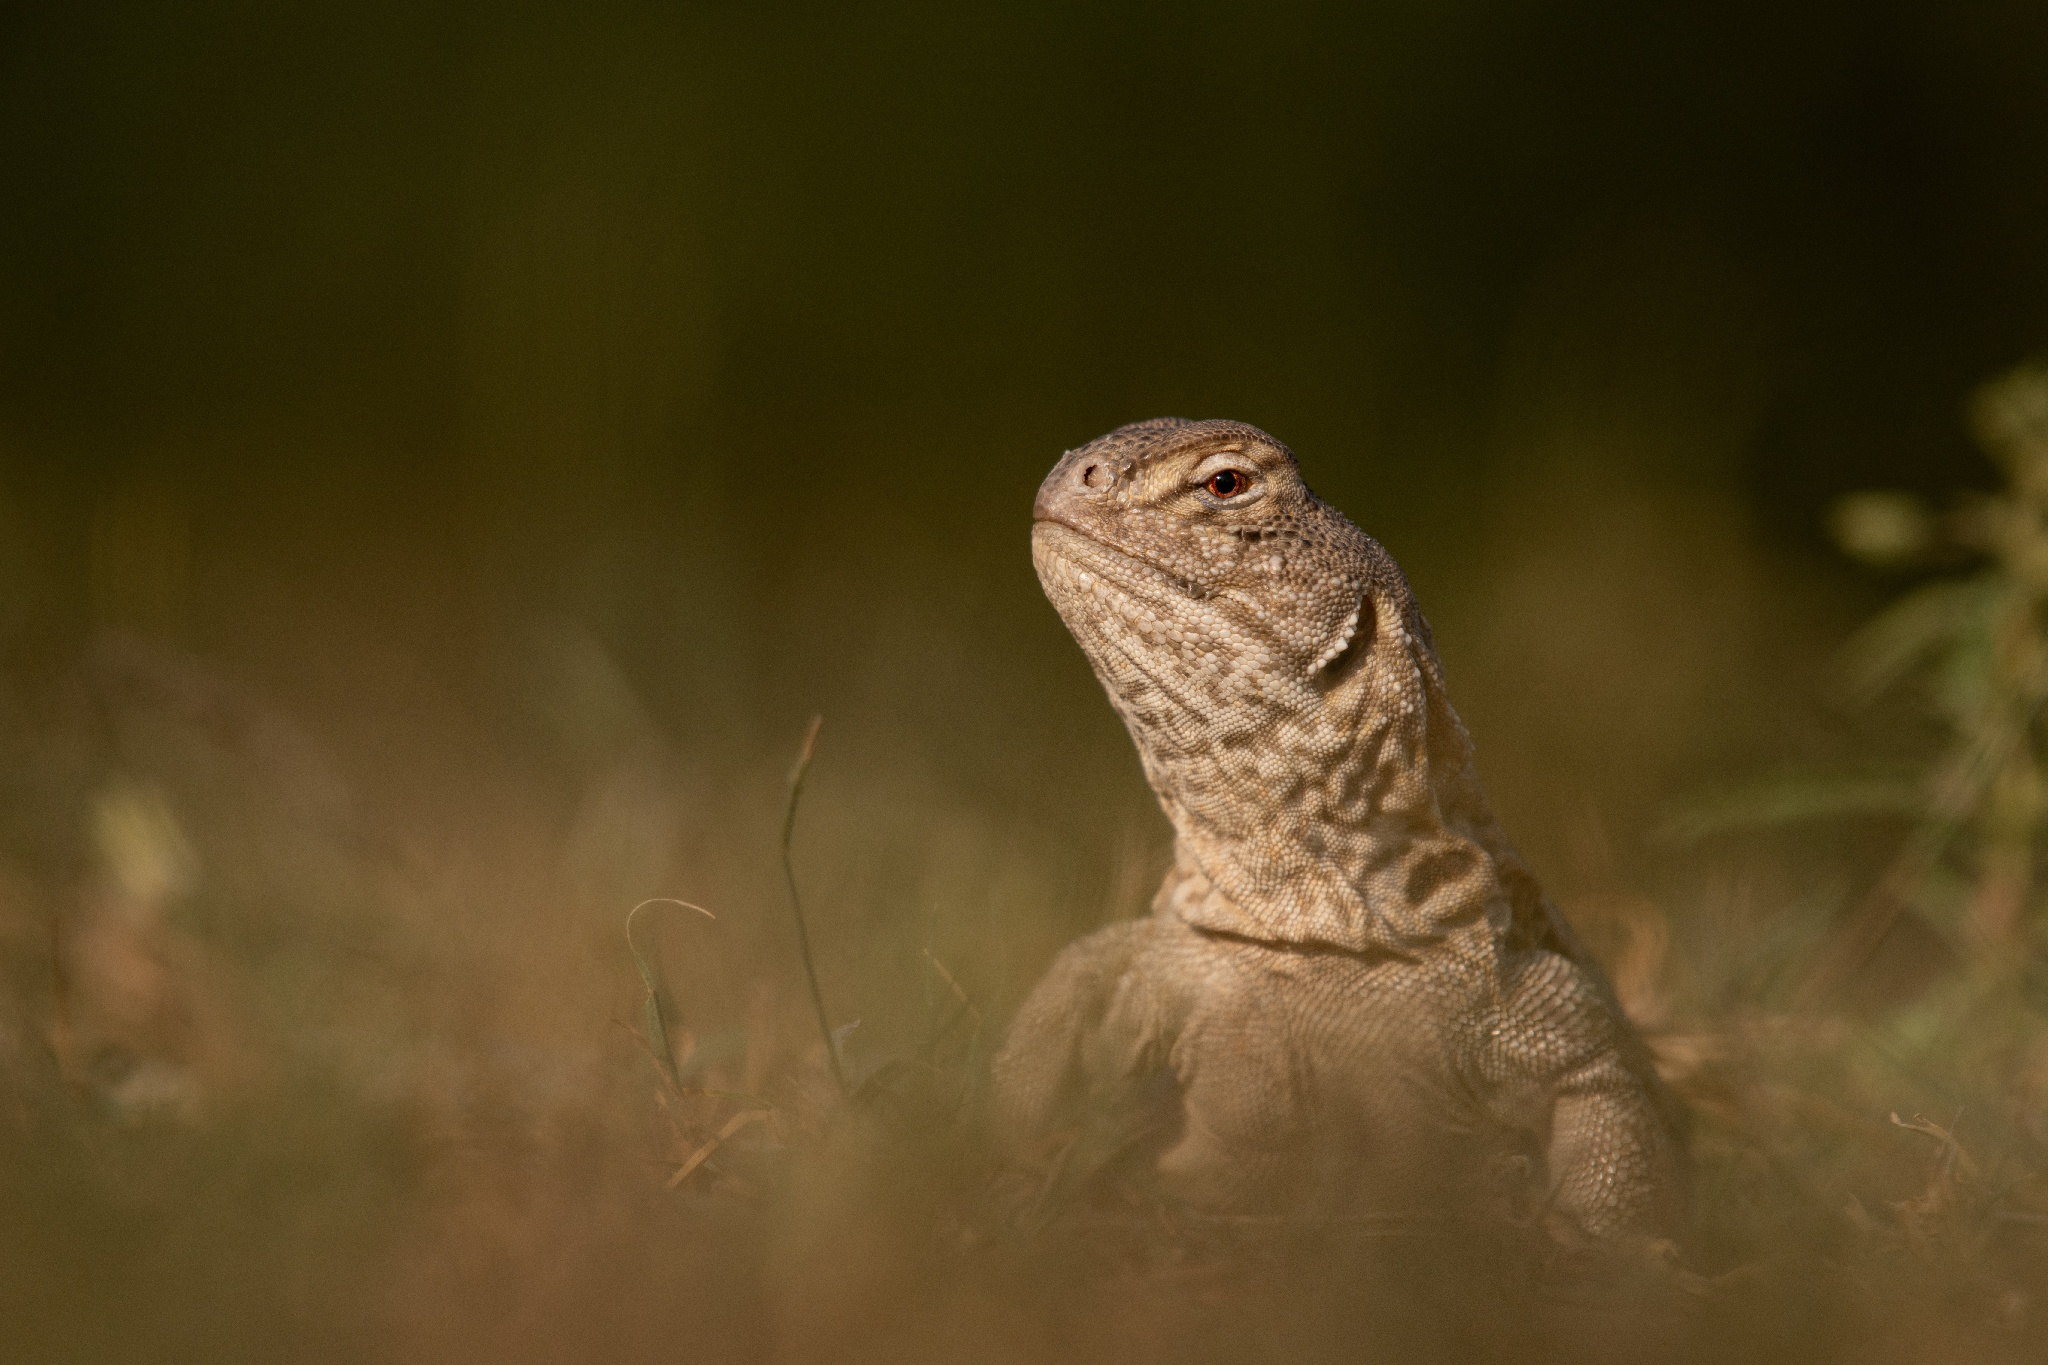 Due to extensive destruction of their habitats, mostly small fragmented, isolated populations of spiny-tailed lizards survive in patchy arid and semi-arid areas. Photo: Vipul Ramanuj